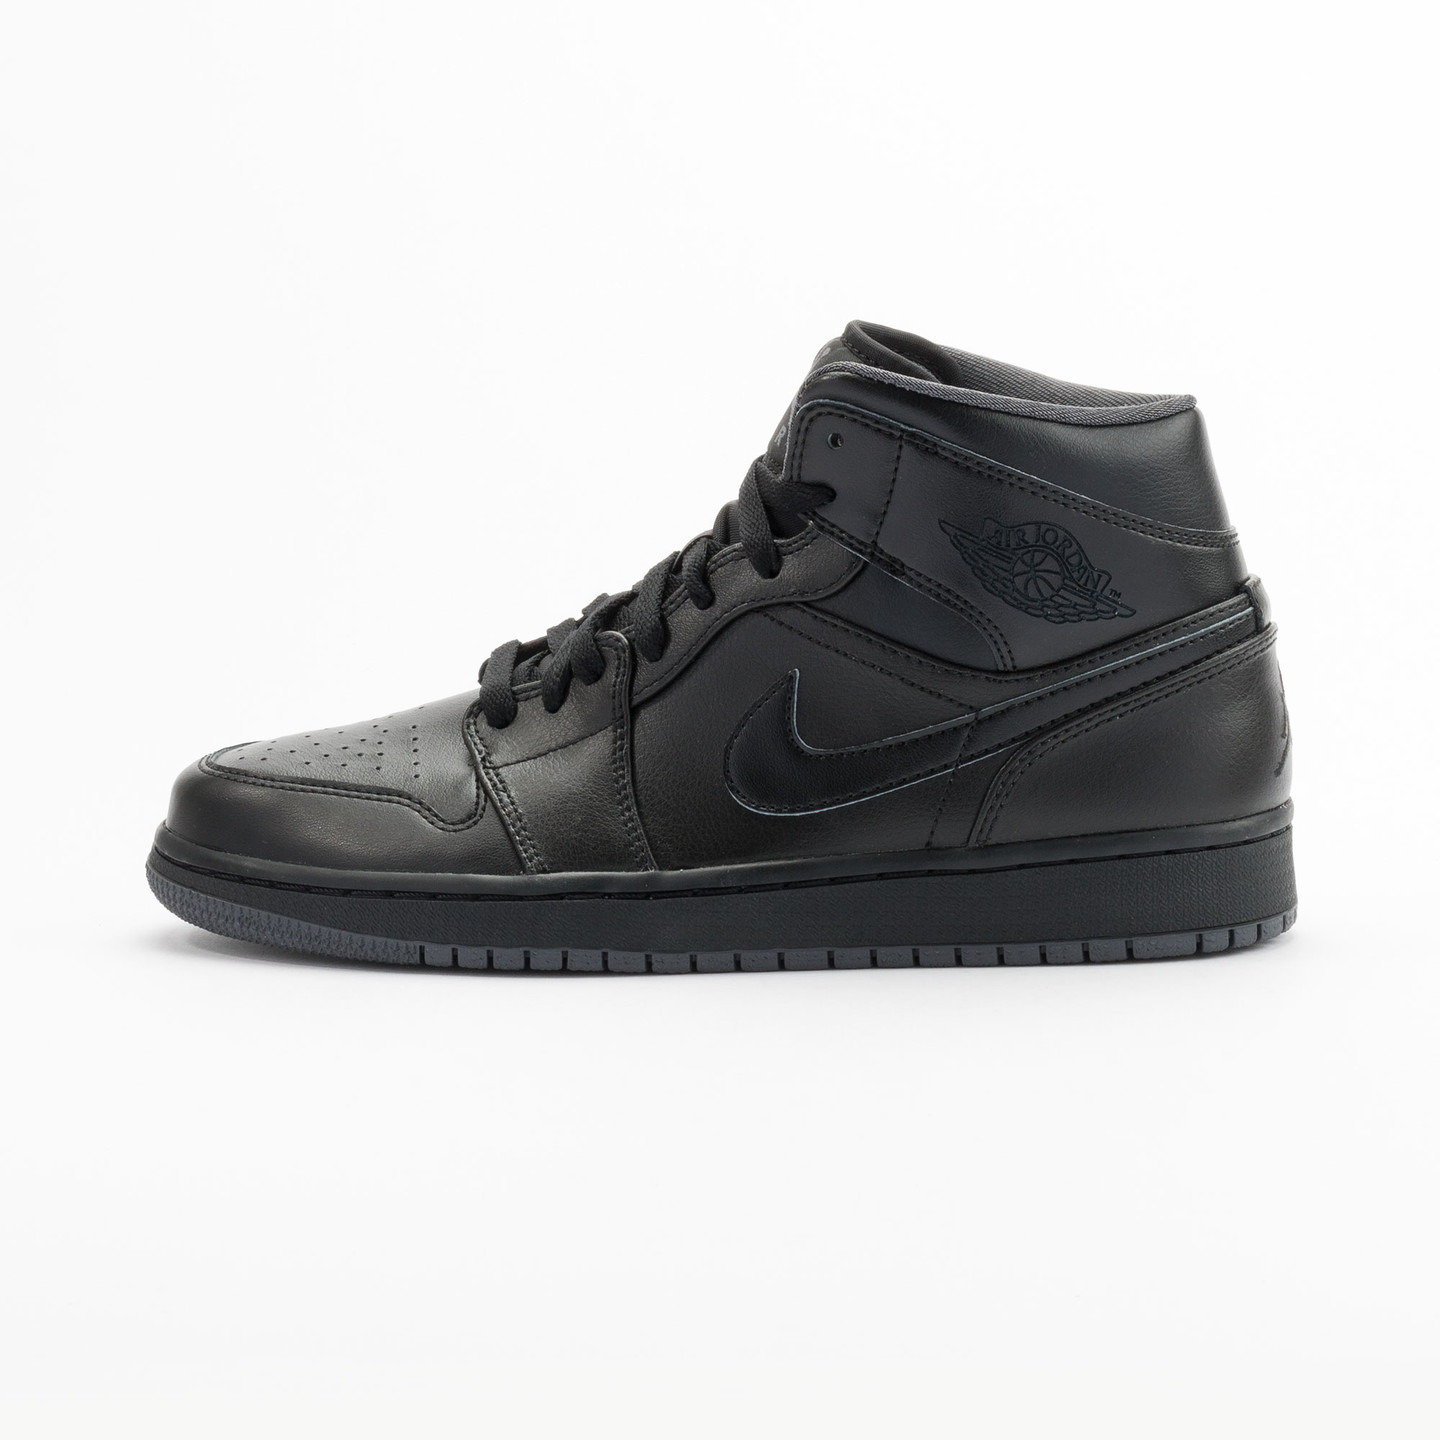 Nike Air Jordan 1 Mid Black / Dark Grey 554724-021-41